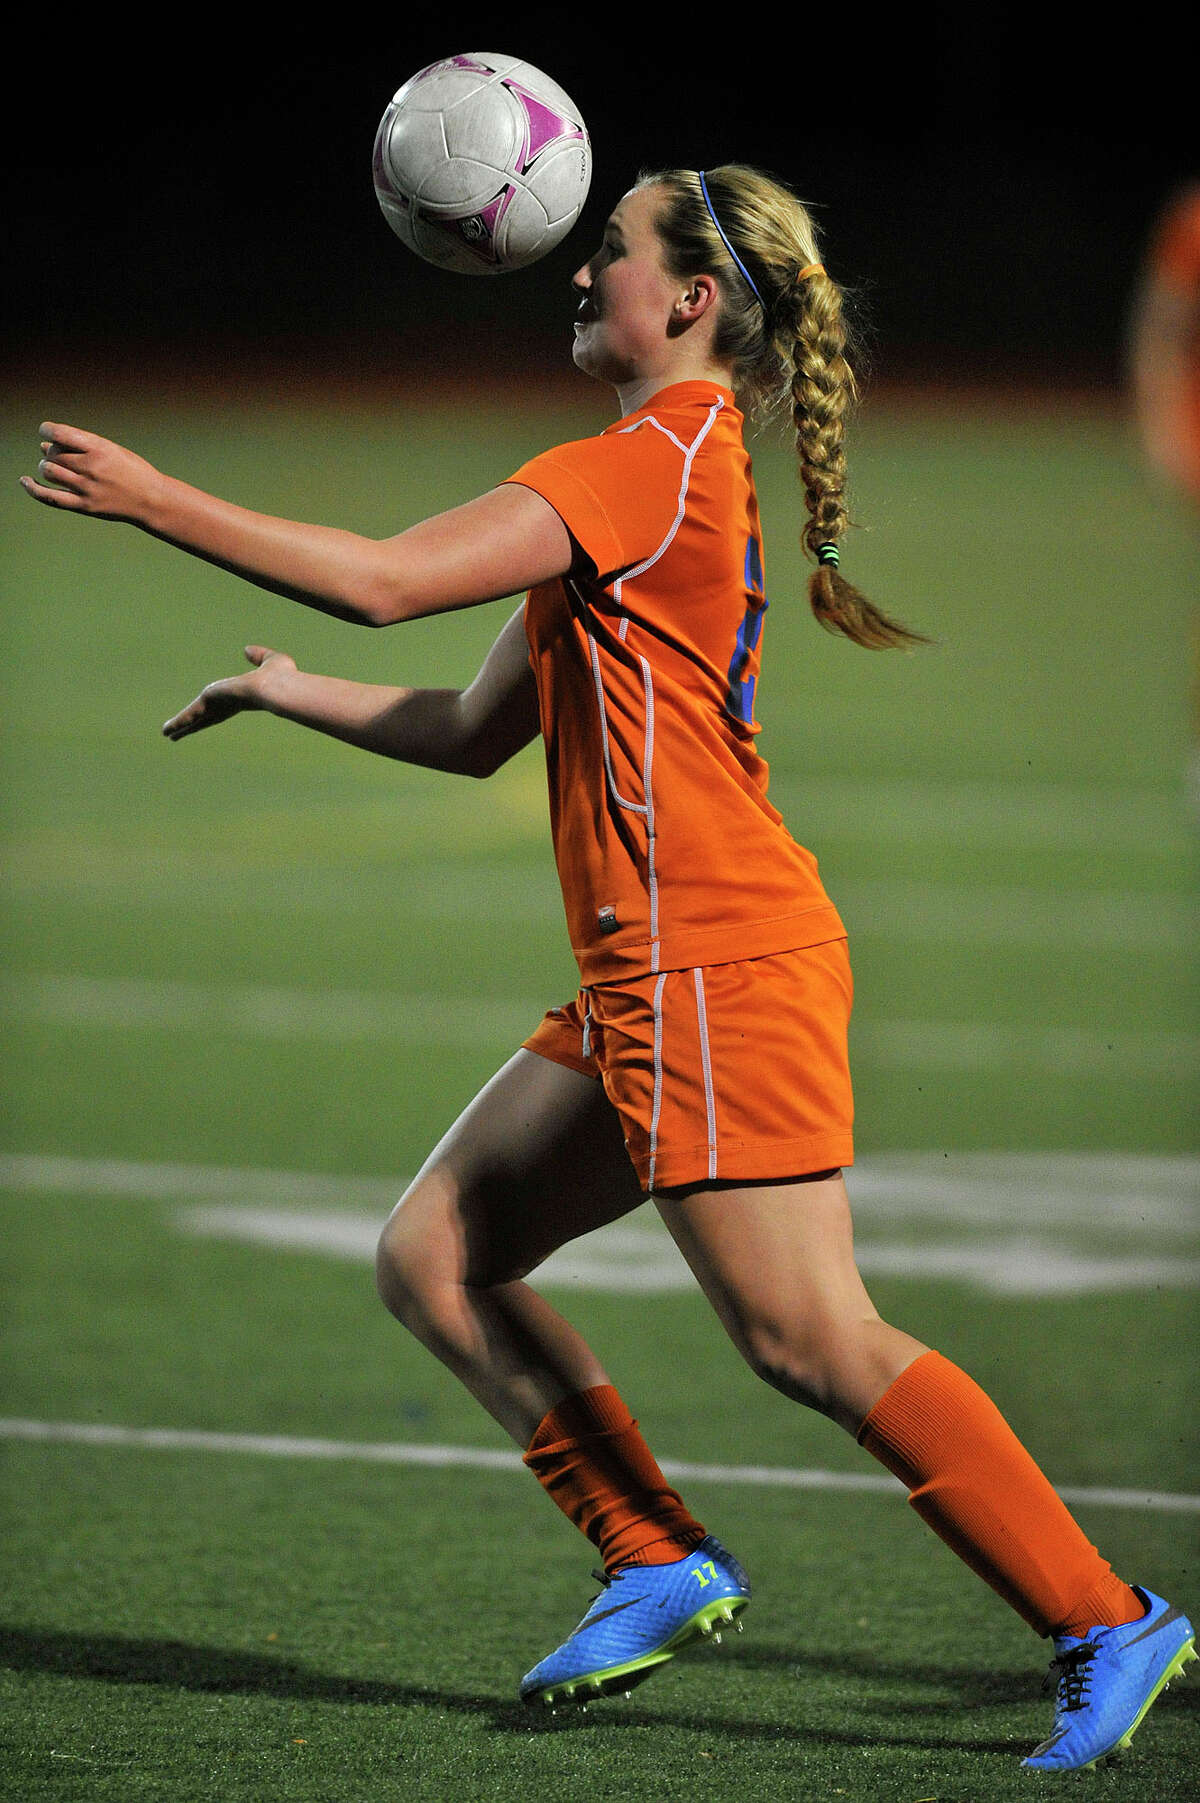 Danbury's Jessica Robbins heads the ball during the Hatters' FCIAC semifinal game against St. Joseph's at Norwalk High School in Norwalk, Conn., on Monday, Oct. 28, 2013.